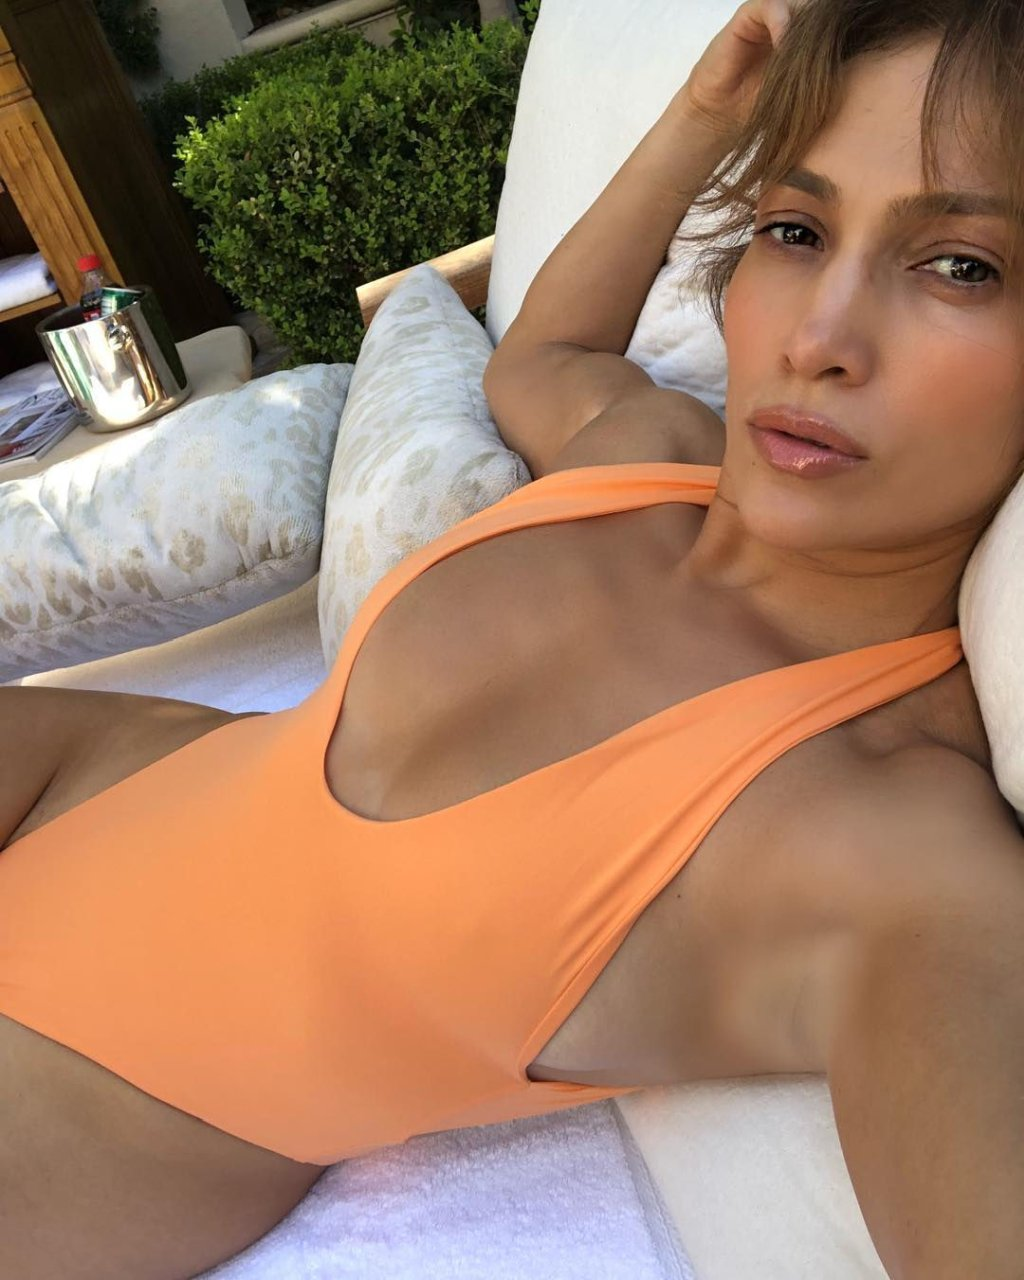 Jennifer Lopez Porn Photos jennifer lopez nude photos and videos | #thefappening